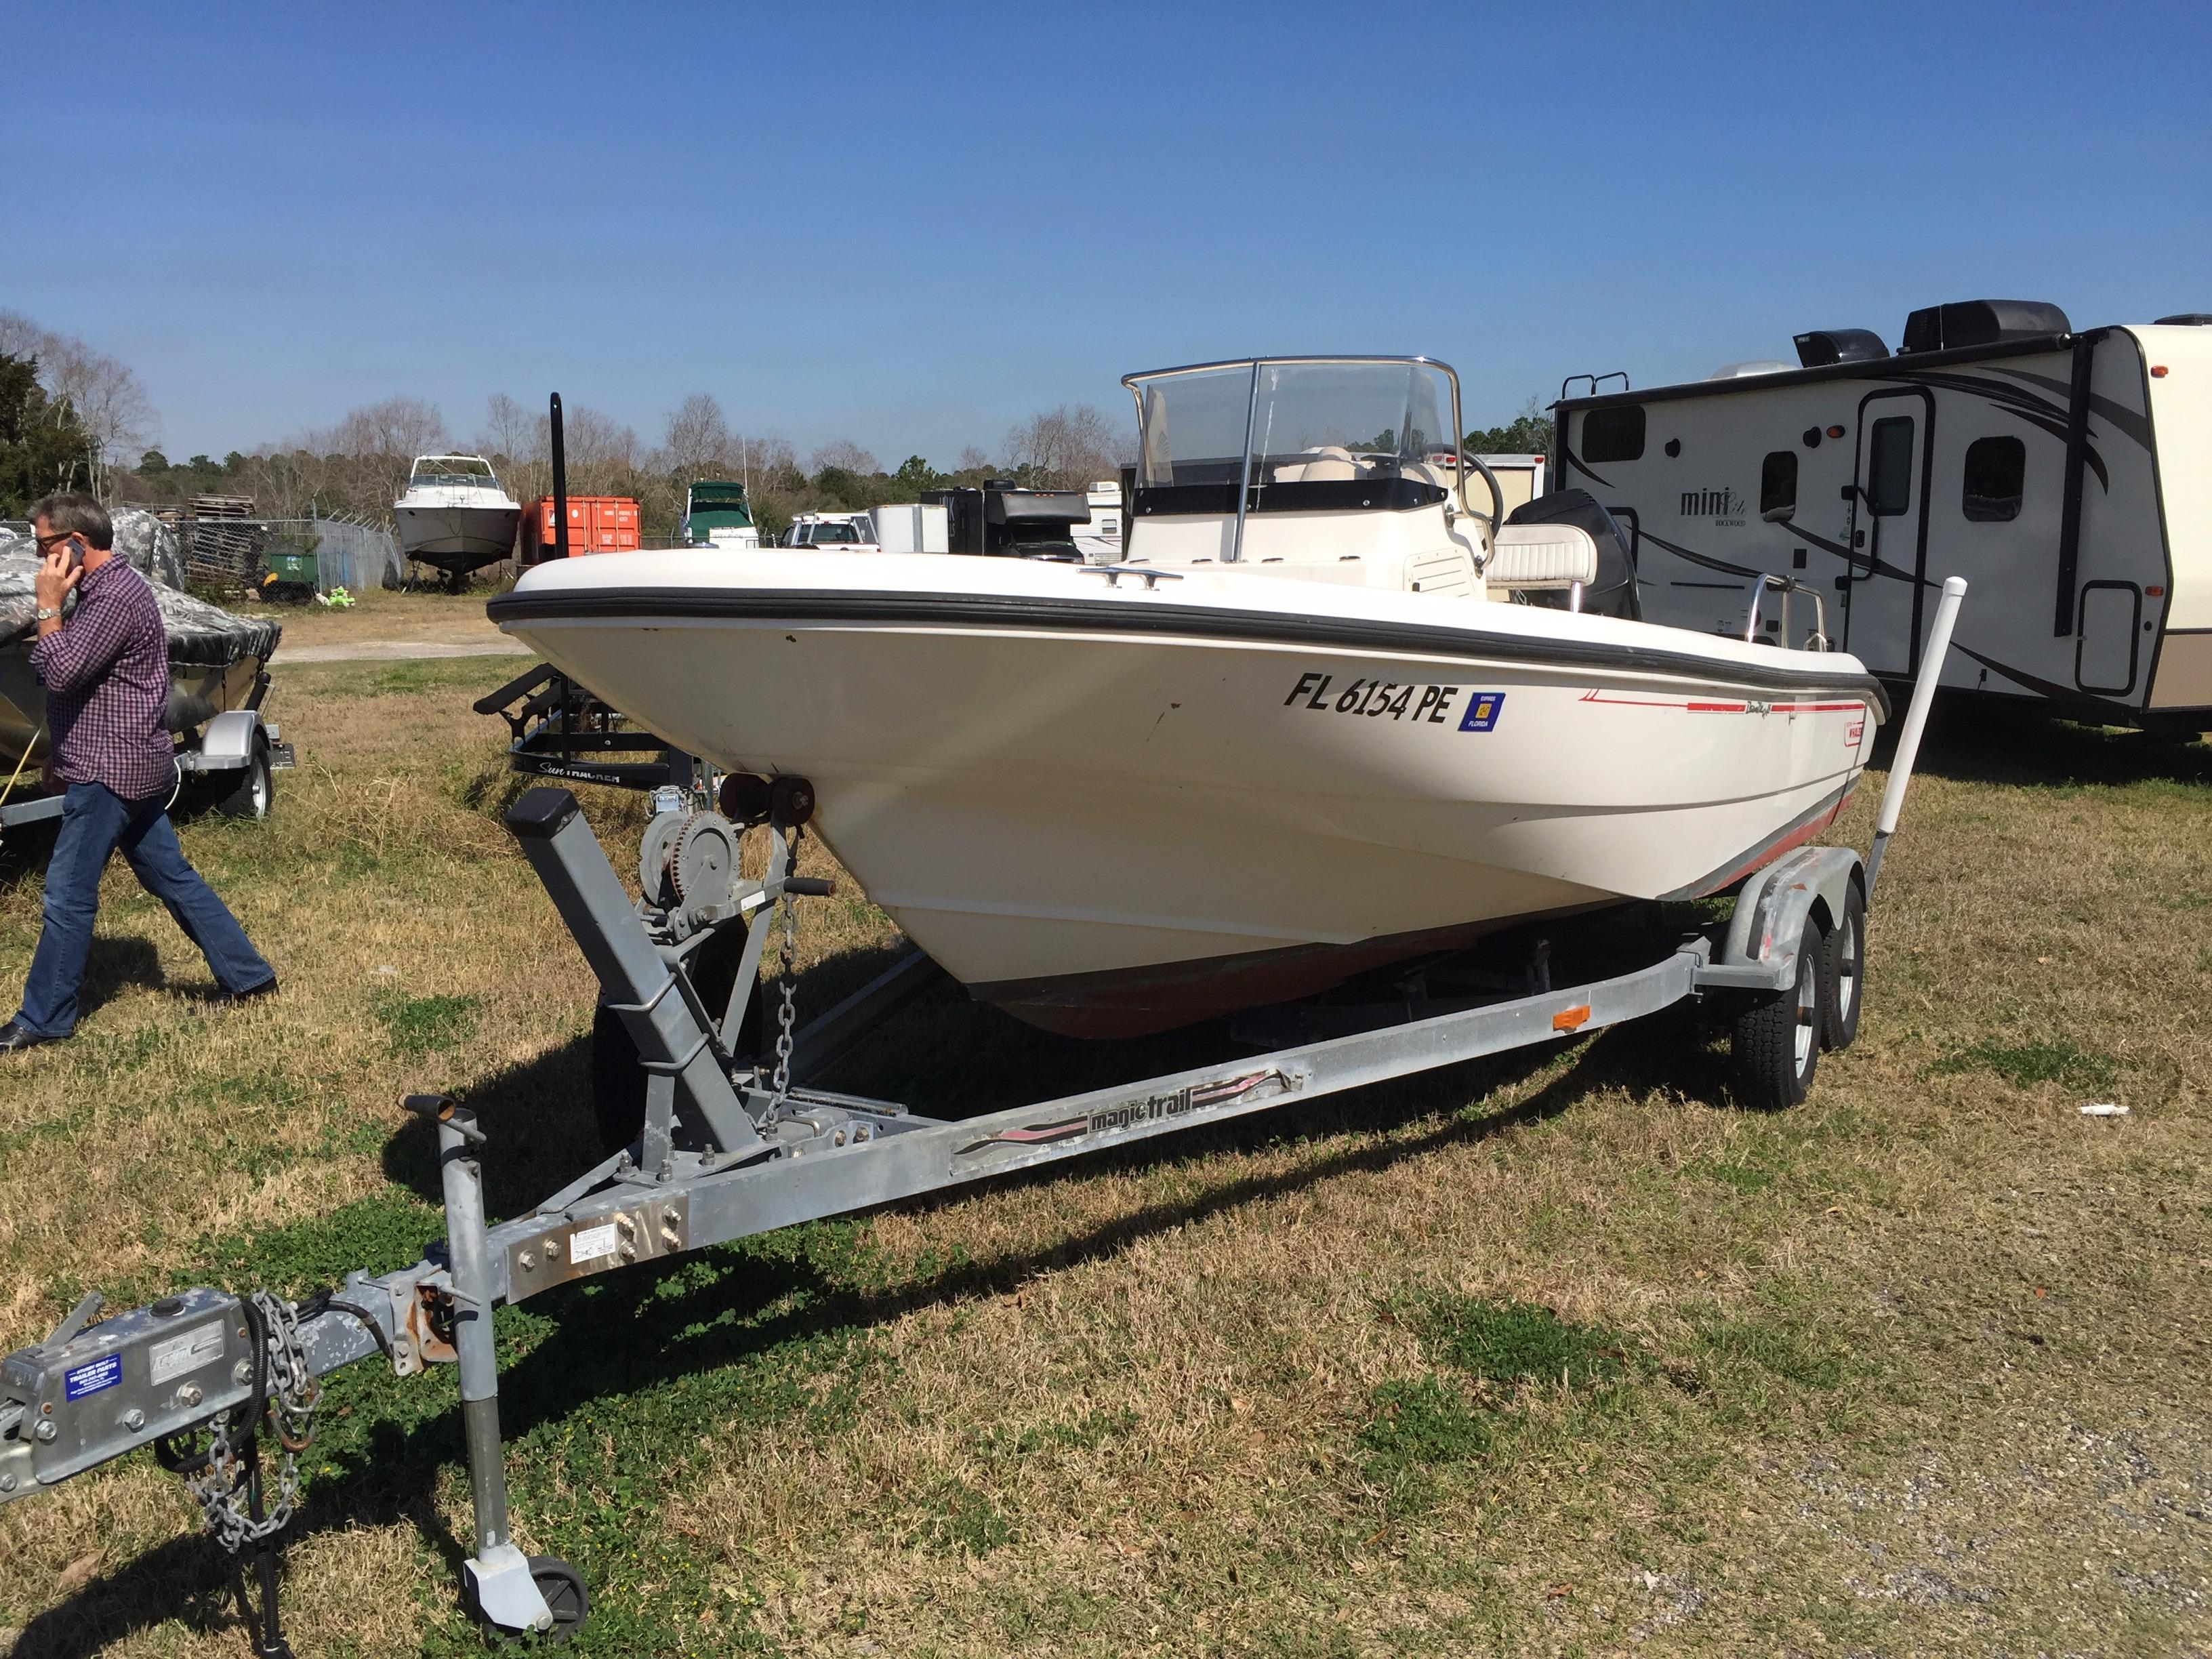 6145792_20170217112028541_1_XLARGE&w=924&h=693&t=1487359229000 1998 boston whaler 18 dauntless power boat for sale www boston whaler wiring harness at alyssarenee.co